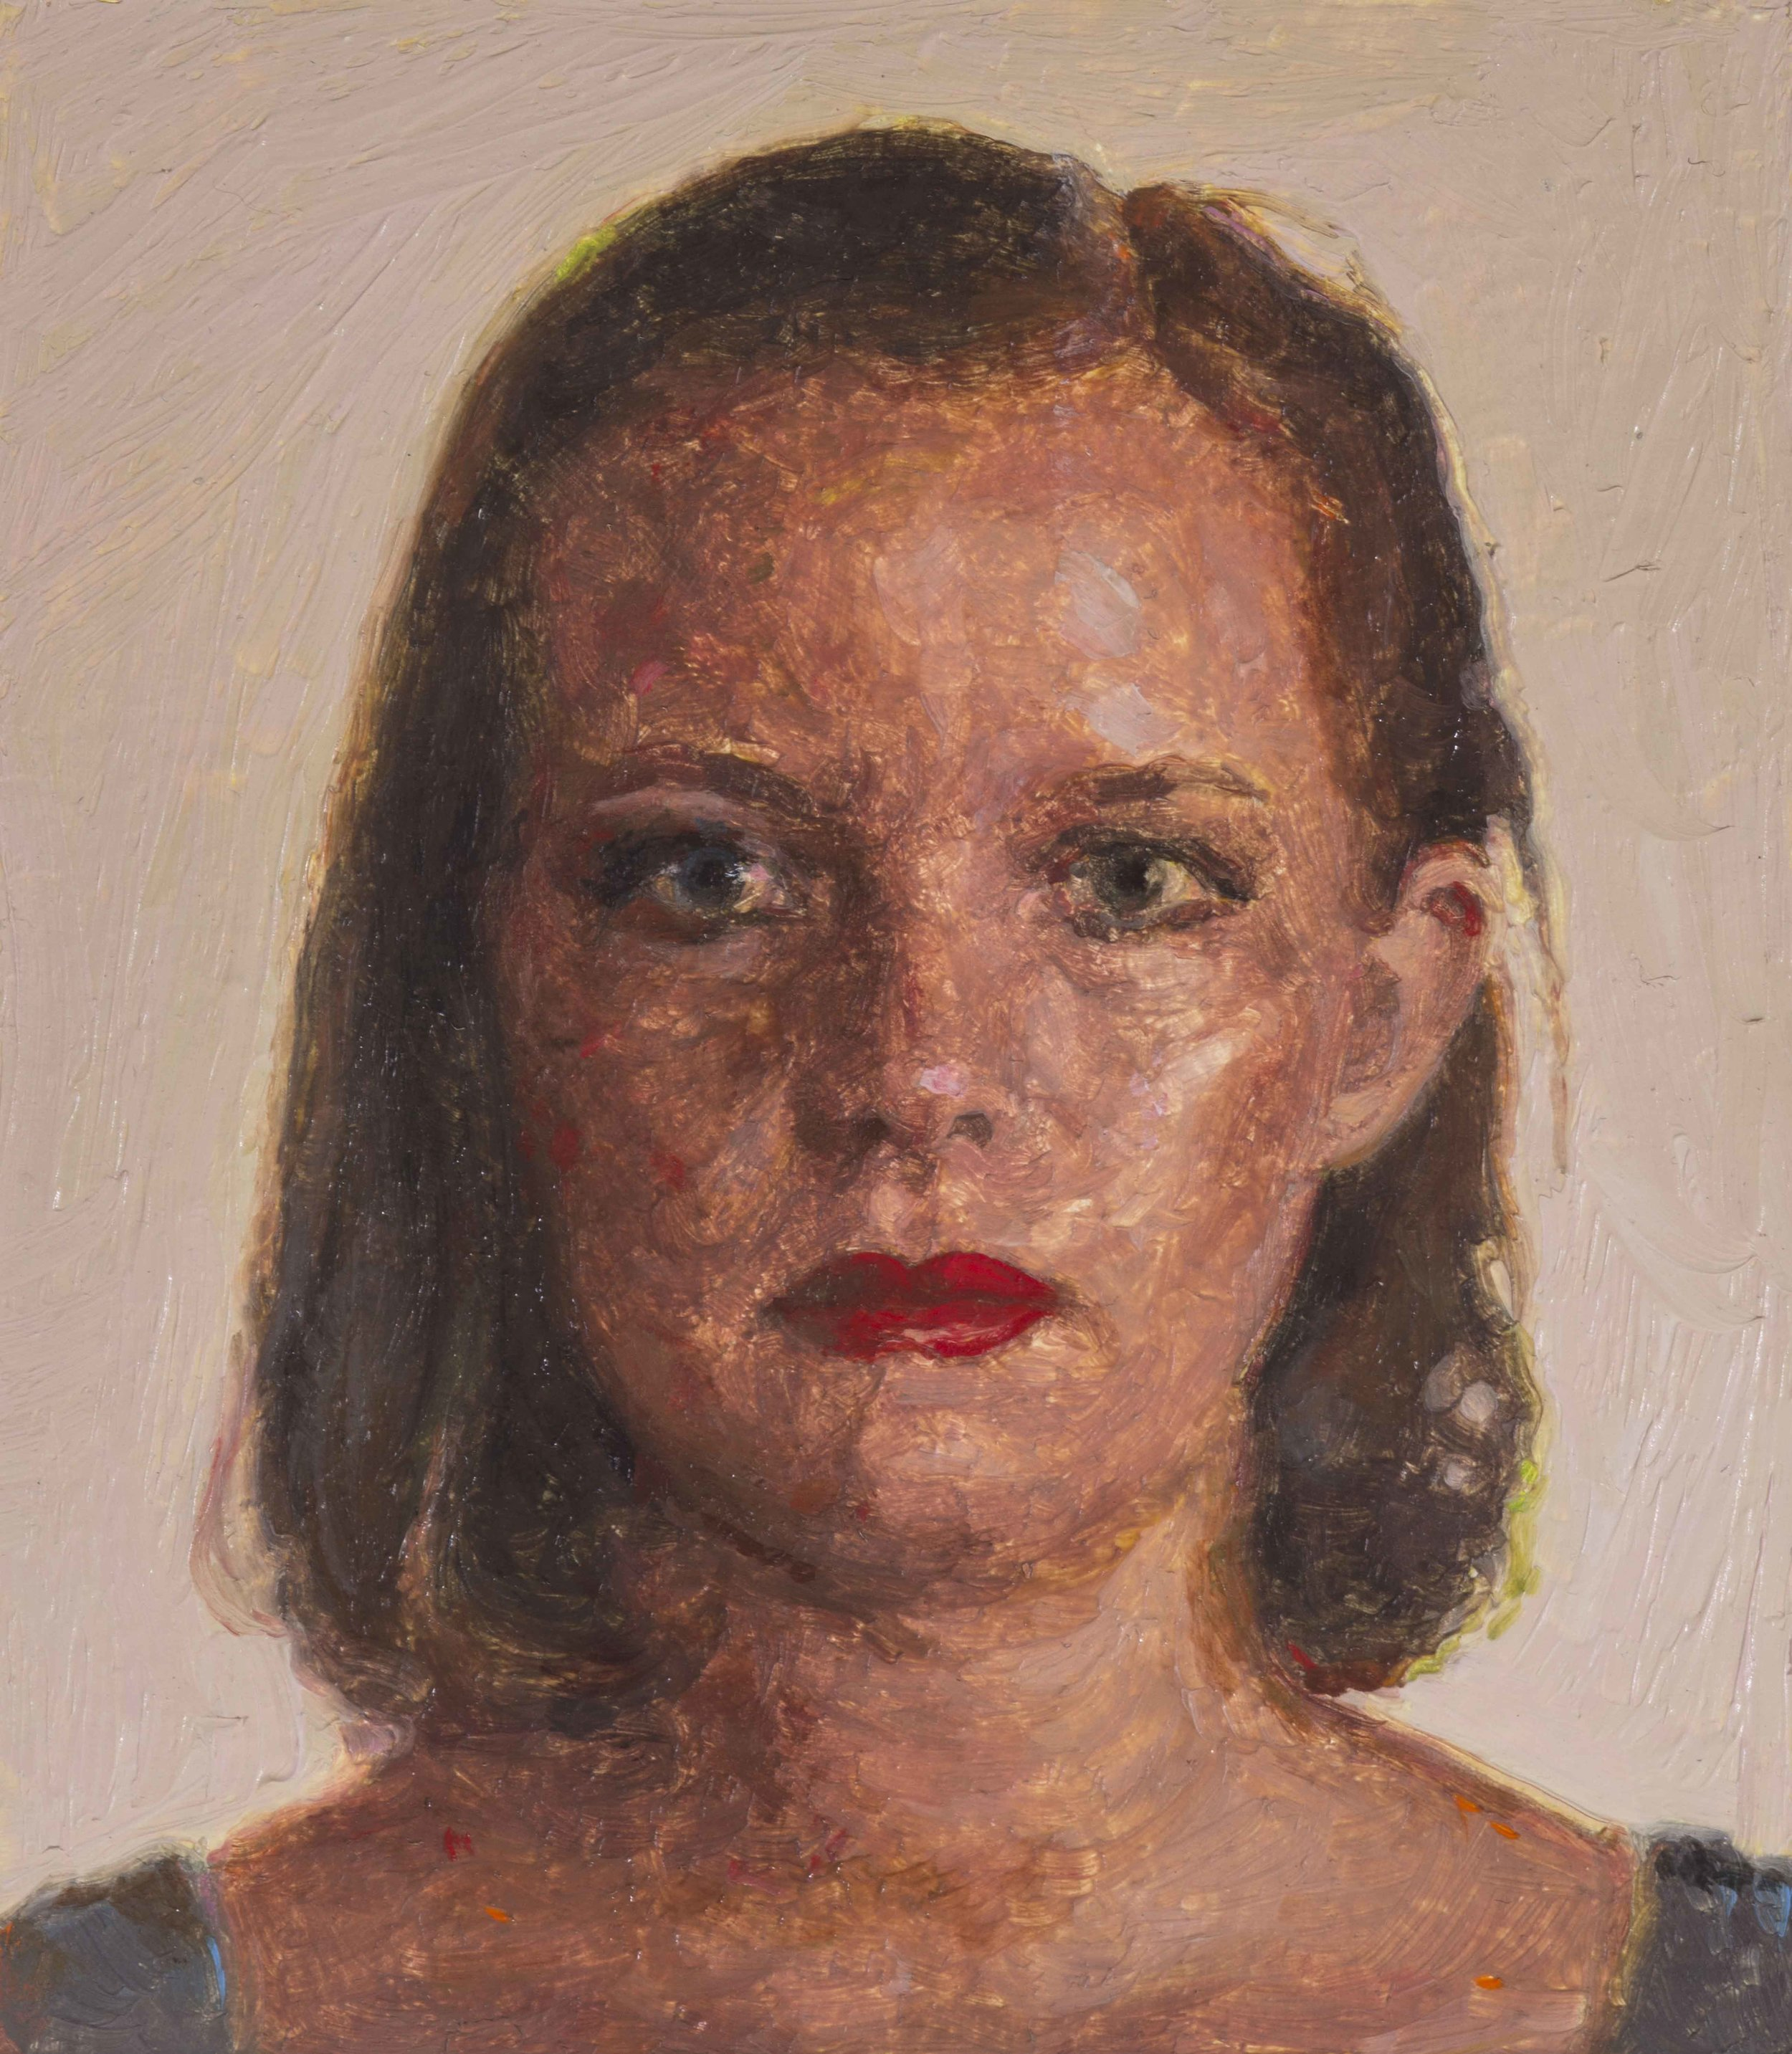 Portrait of Susan Frances Fragar (detail), oil on papoer, 67.5 x 50 cm, (image 10 x 11.5 cm), 2016. (Private collection).